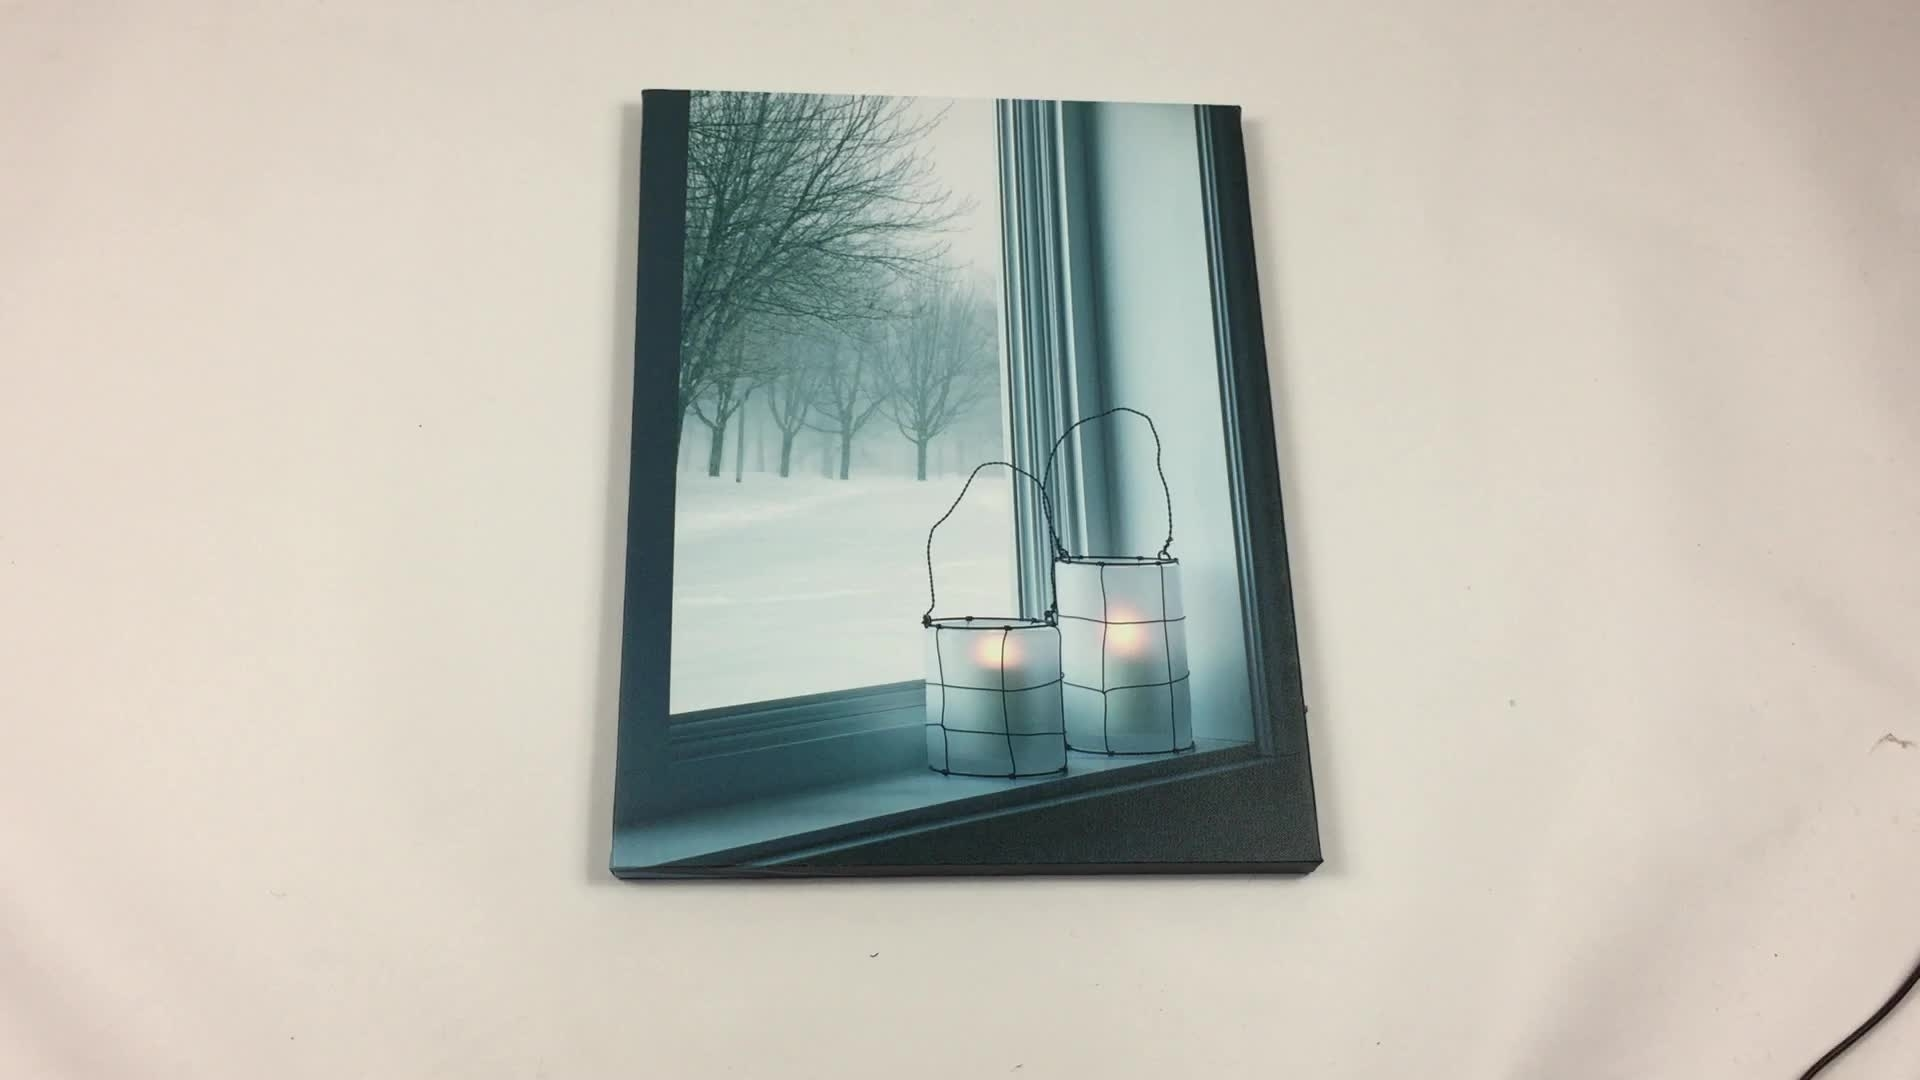 Winter Lantern In Window Scenery Led Light Painting Canvas Wall Art With Regard To Most Recently Released Window Frame Wall Art (View 13 of 15)